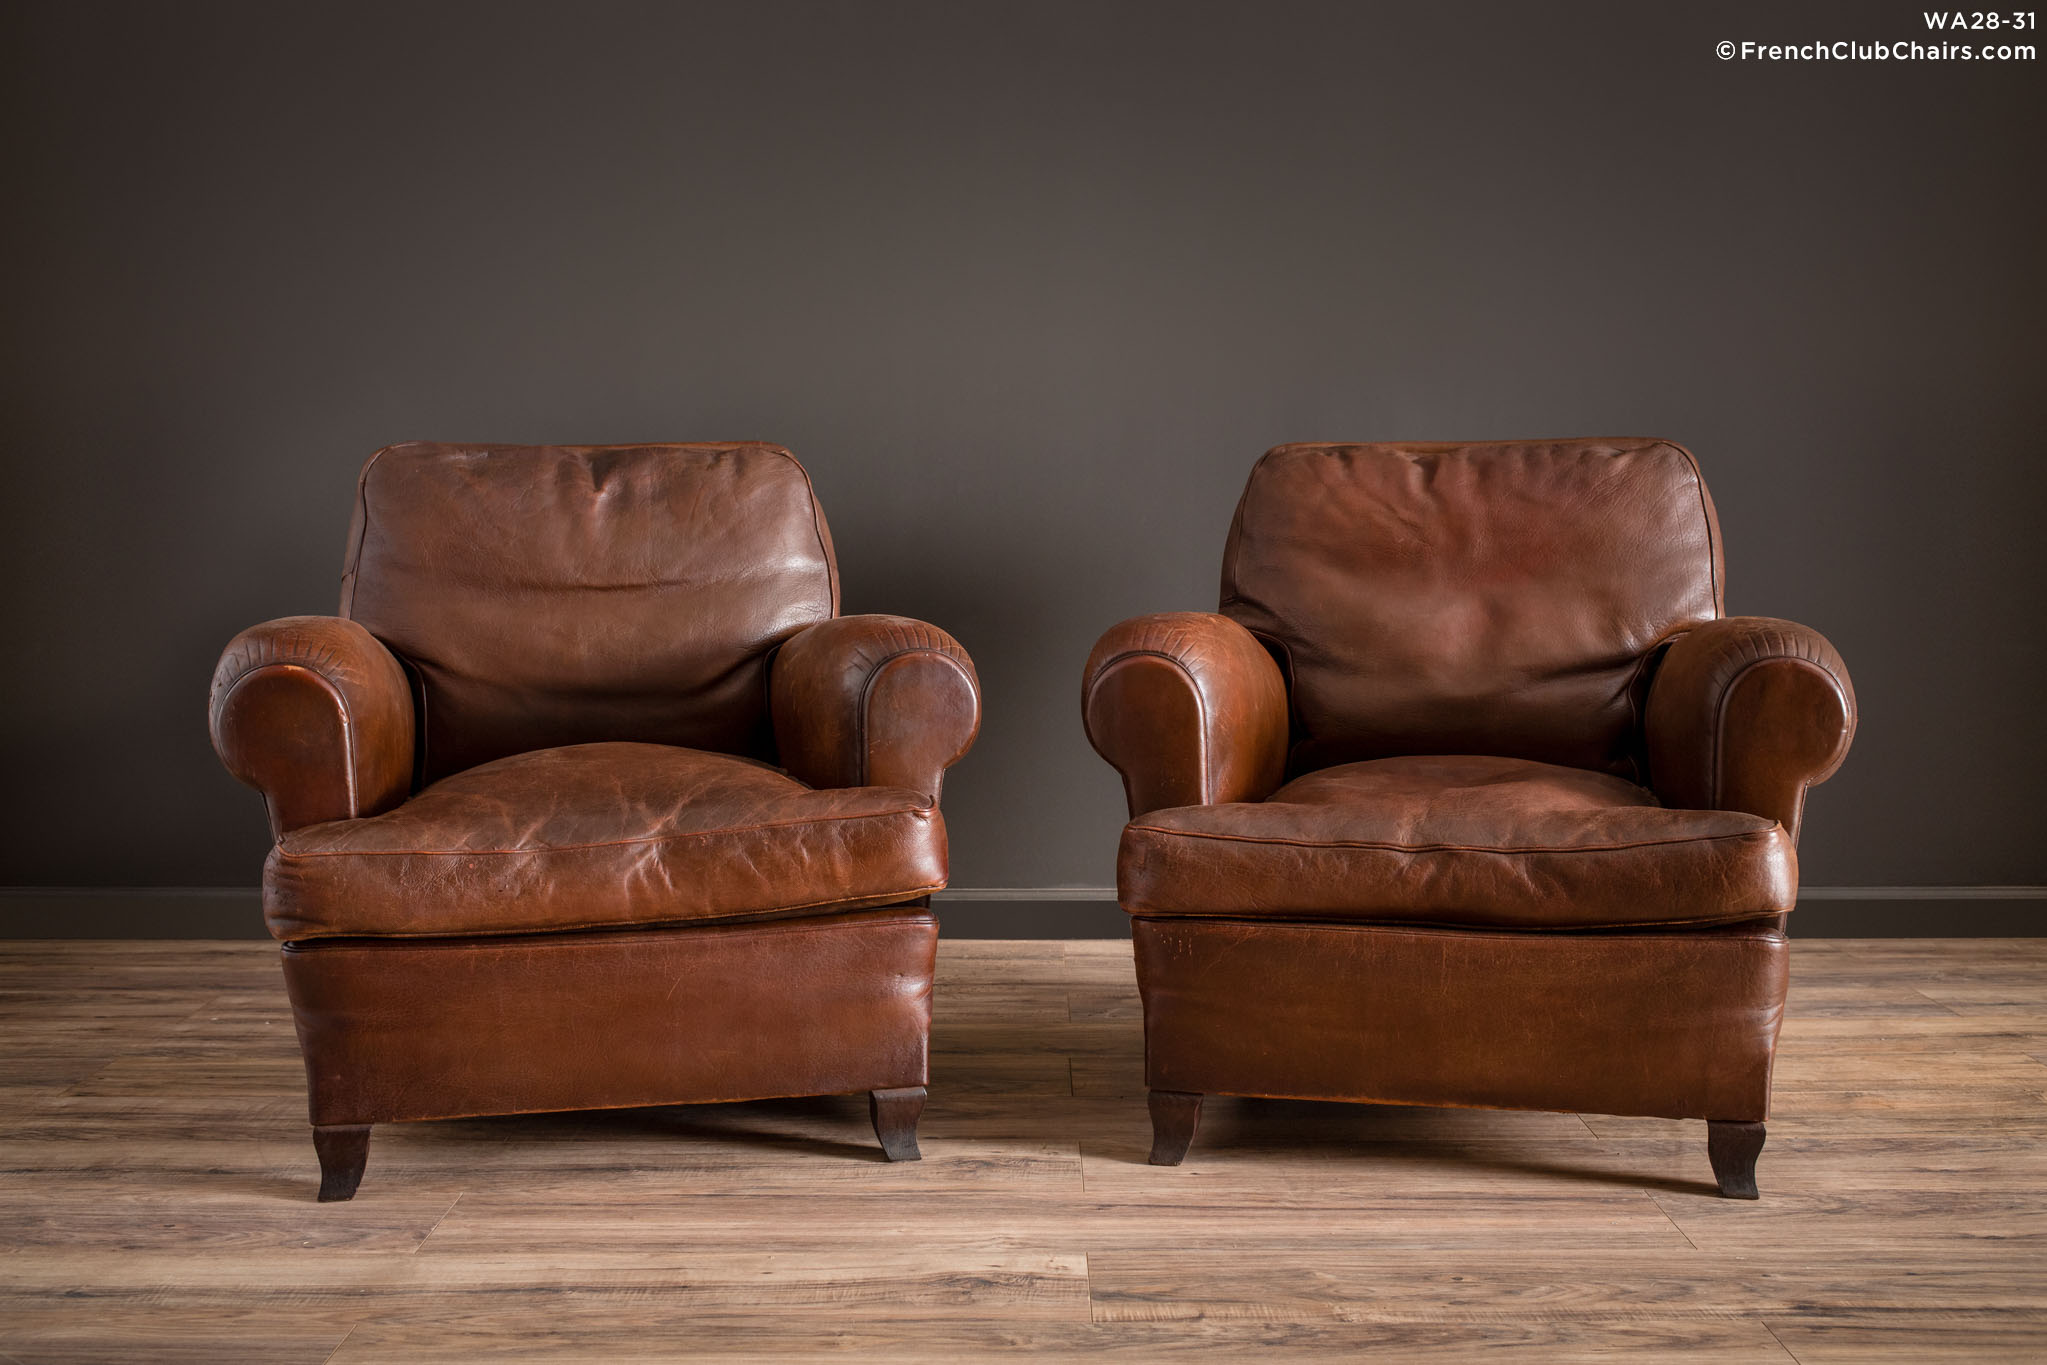 WA_28-31_DeGaulle_Library_Pair_R_1TQ1-williams-antiks-leather-french-club-chair-wa_fcccom